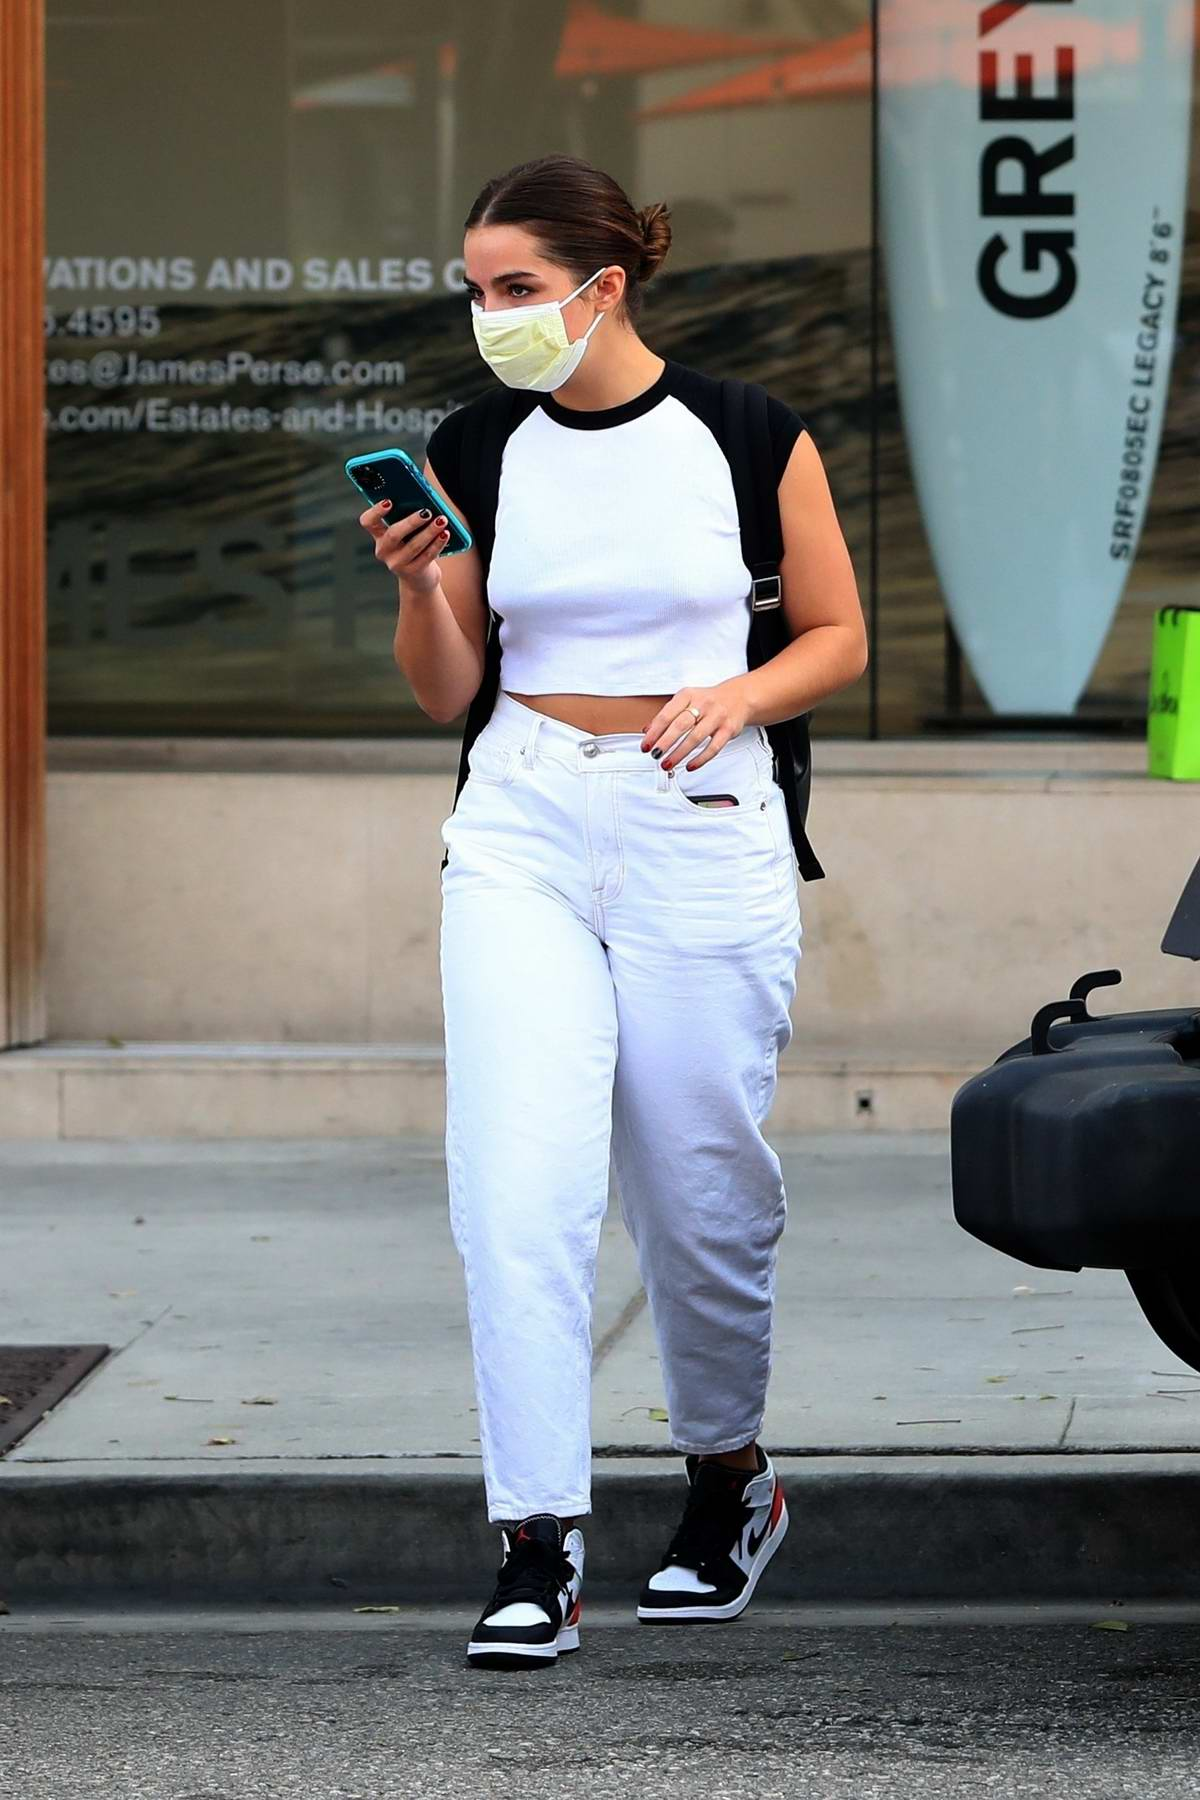 Addison Rae returns to her custom Jeep Wrangler as she leaves a dermatologist in Beverly Hill, California